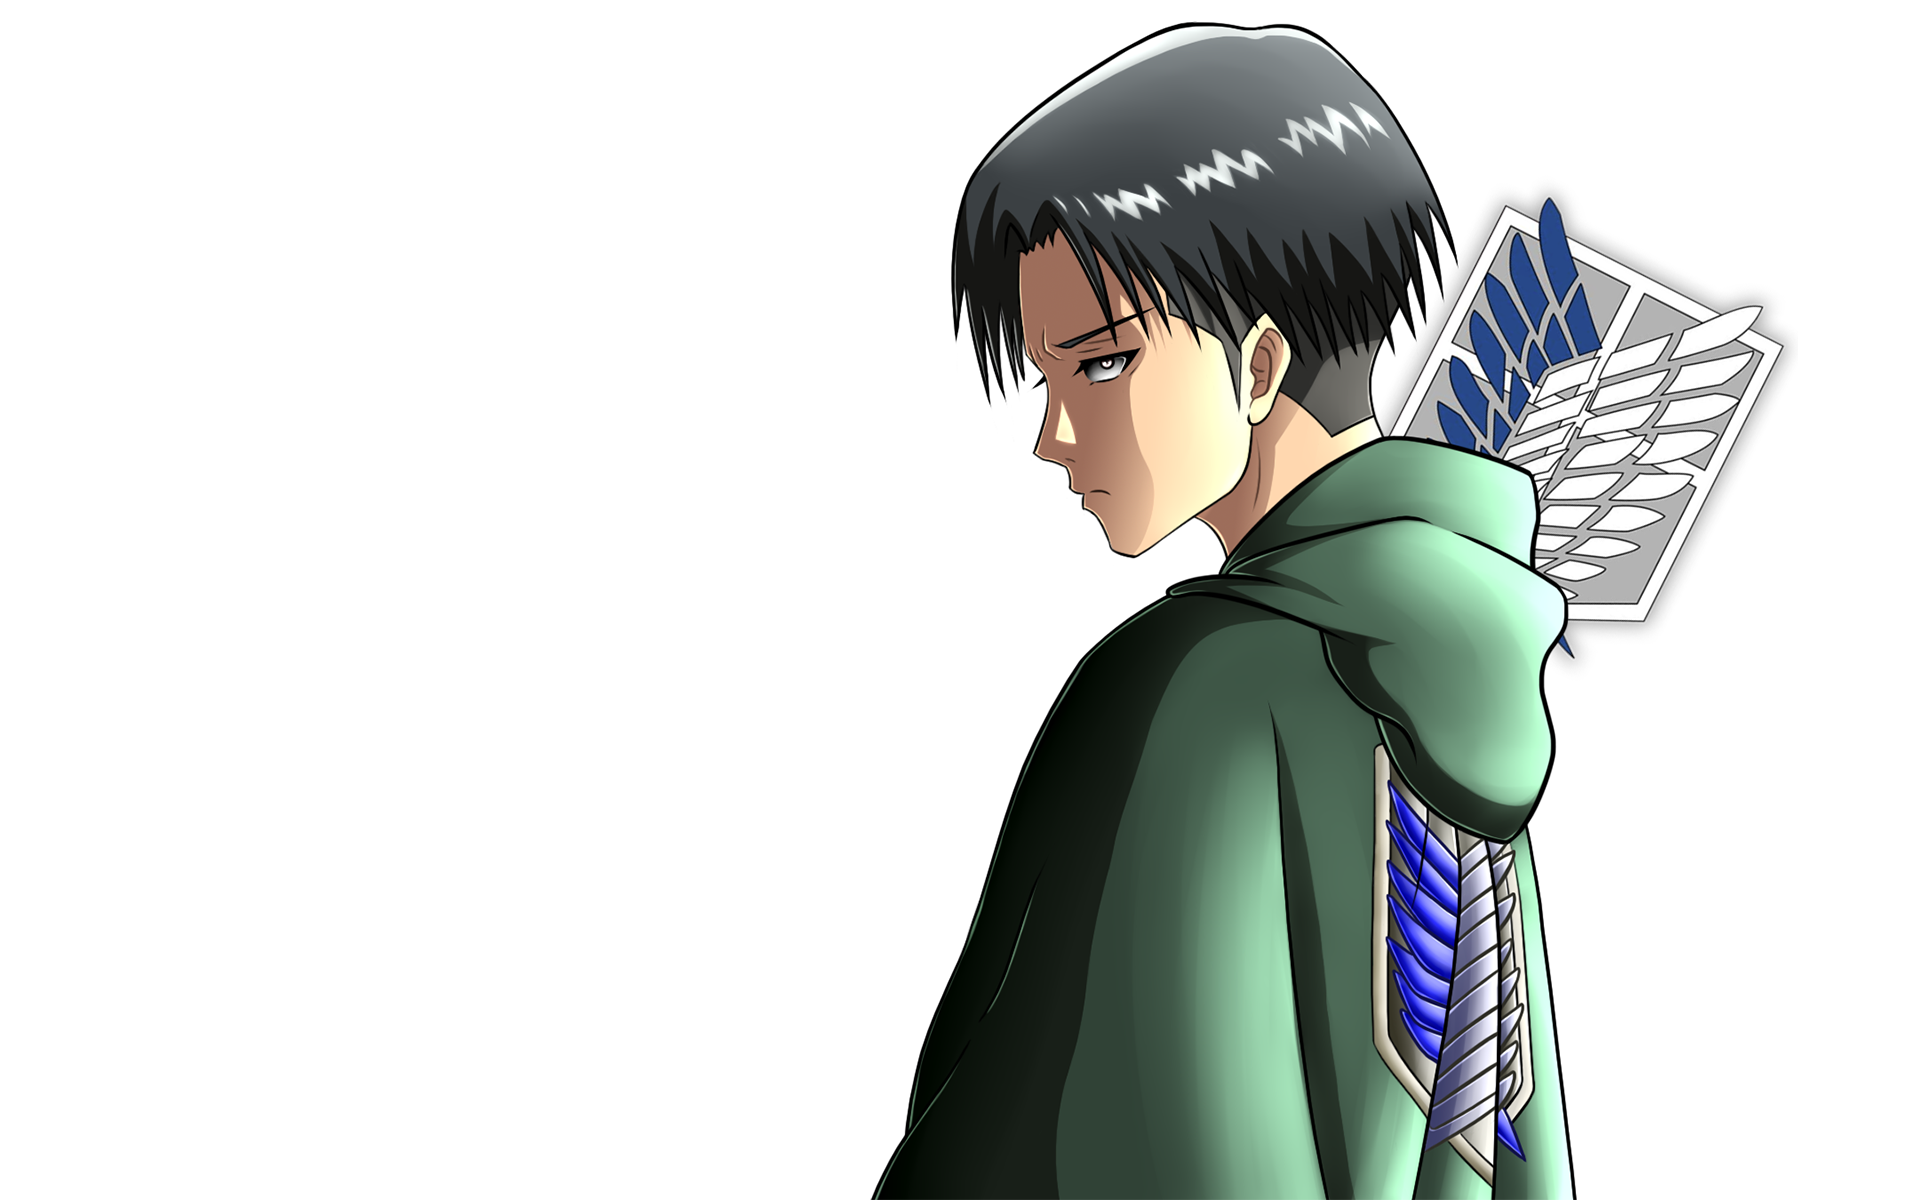 Attack On Titan Hd Wallpaper Backgroun 924069 Png Images Pngio